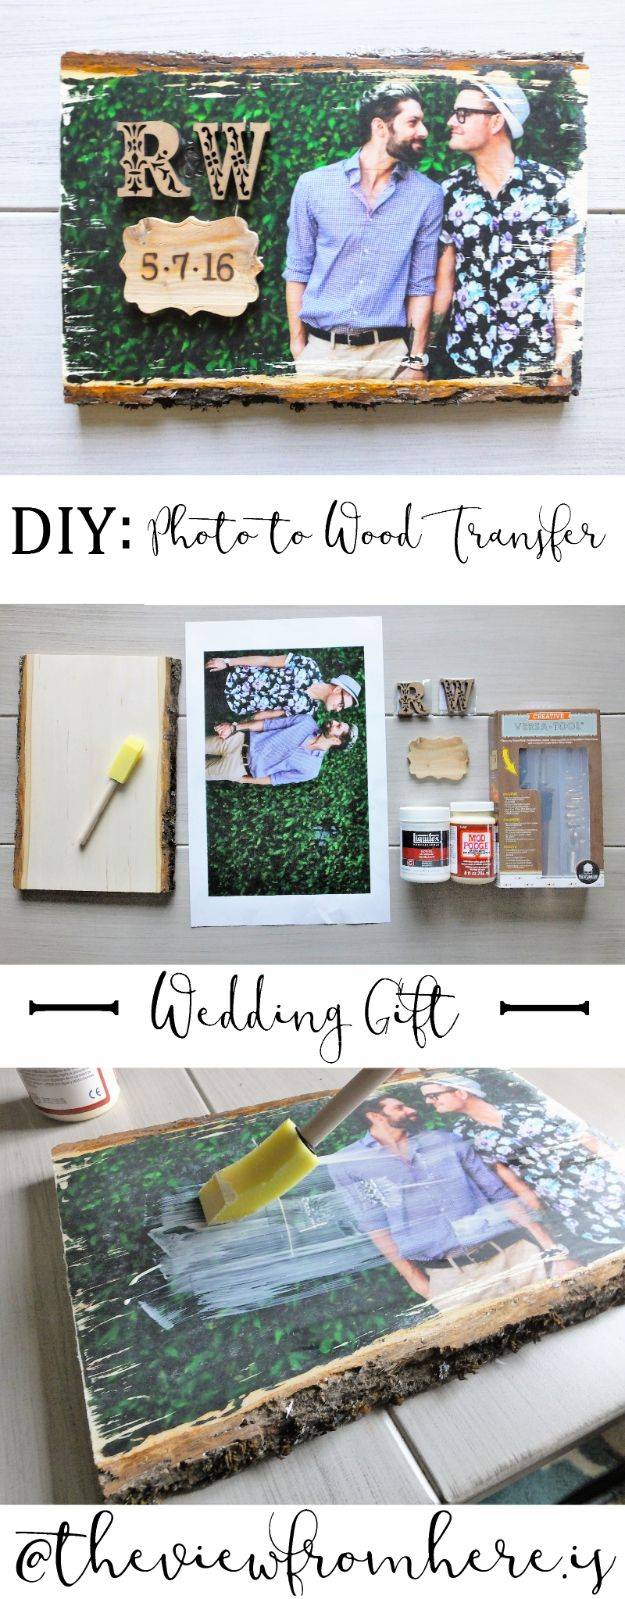 Cheap Wedding Gift Ideas - Photo-to-Wood Transfer Wedding Gift - DIY Wedding Gifts You Can Make On A Budget - Quick and Easy Ideas for Handmade Presents for the Couple Getting Married - Inexpensive Things To Make for Bride and Groom - DIY Home Decor, Wall Art, Glassware, Furniture, Tableware, Place Settings, Cake and Cookie Plates and Glasses http://diyjoy.com/cheap-diy-wedding-gift-ideas